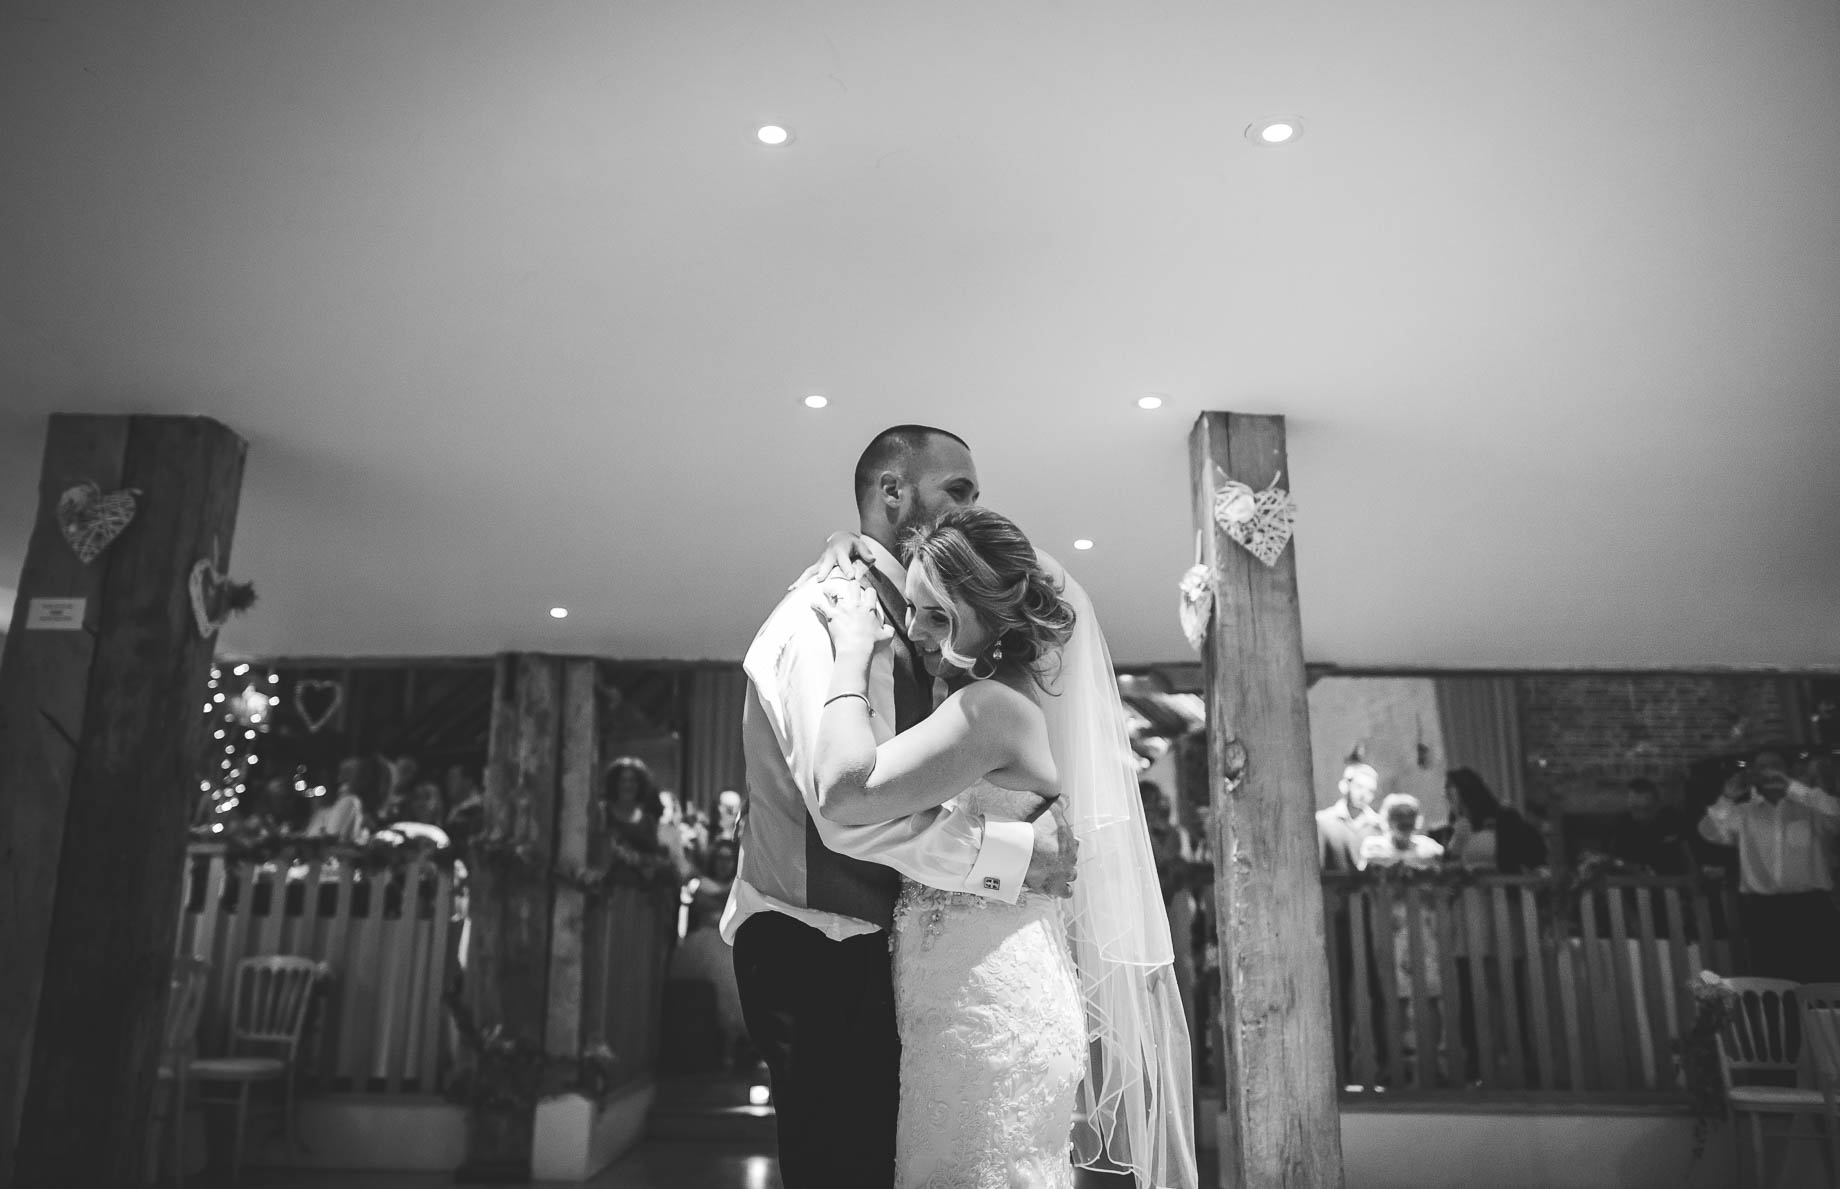 Bury Court Barn wedding photography - Guy Collier - Kate and Russ (184 of 187)